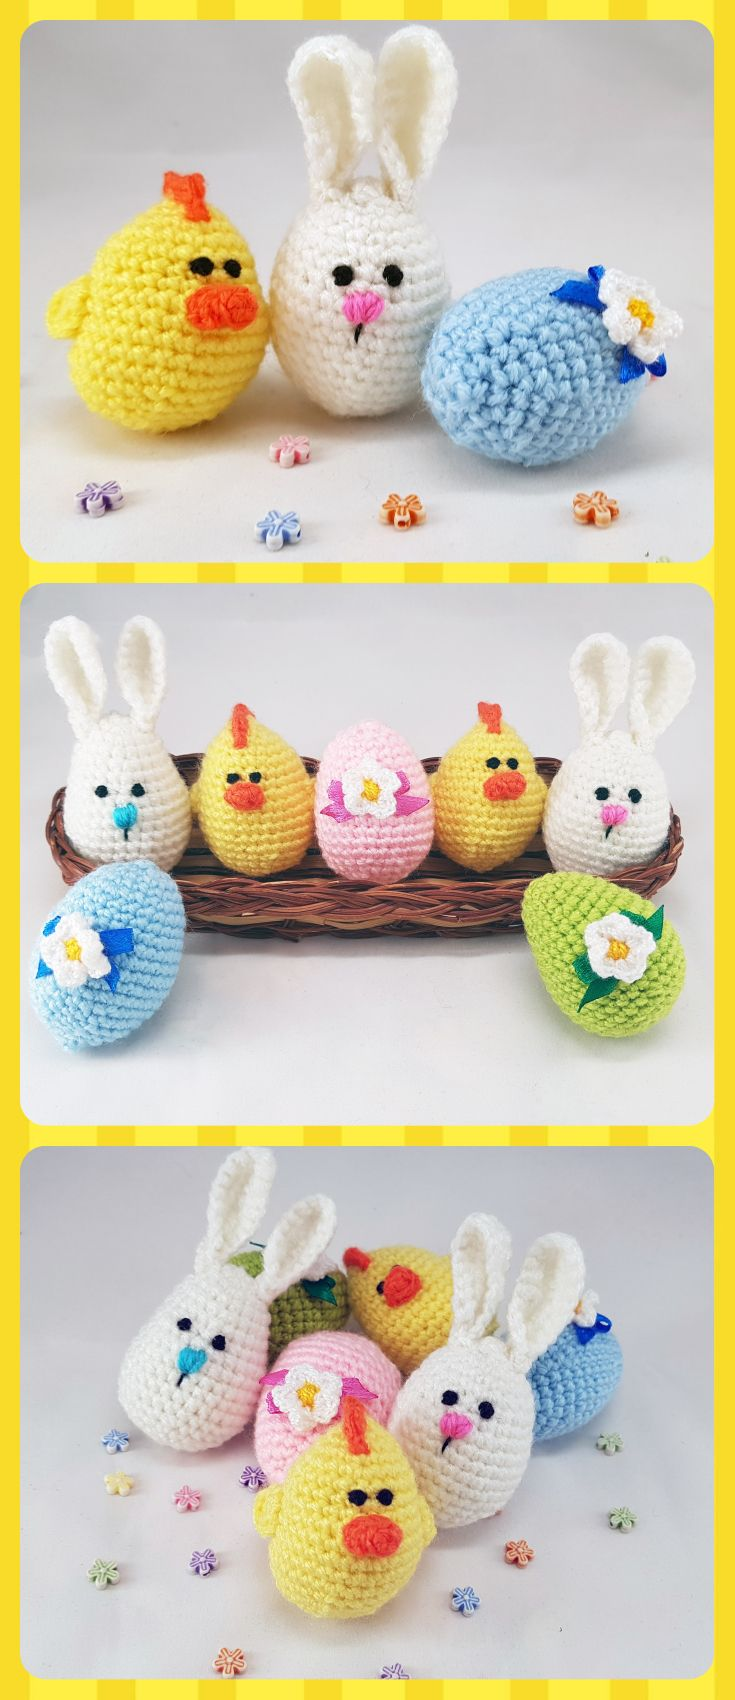 Easter stuffers easter eggs crochet eggs easter gifts bunny eggs easter stuffers easter eggs crochet eggs easter gifts bunny eggs chick egg crochet easter cozy easter negle Image collections